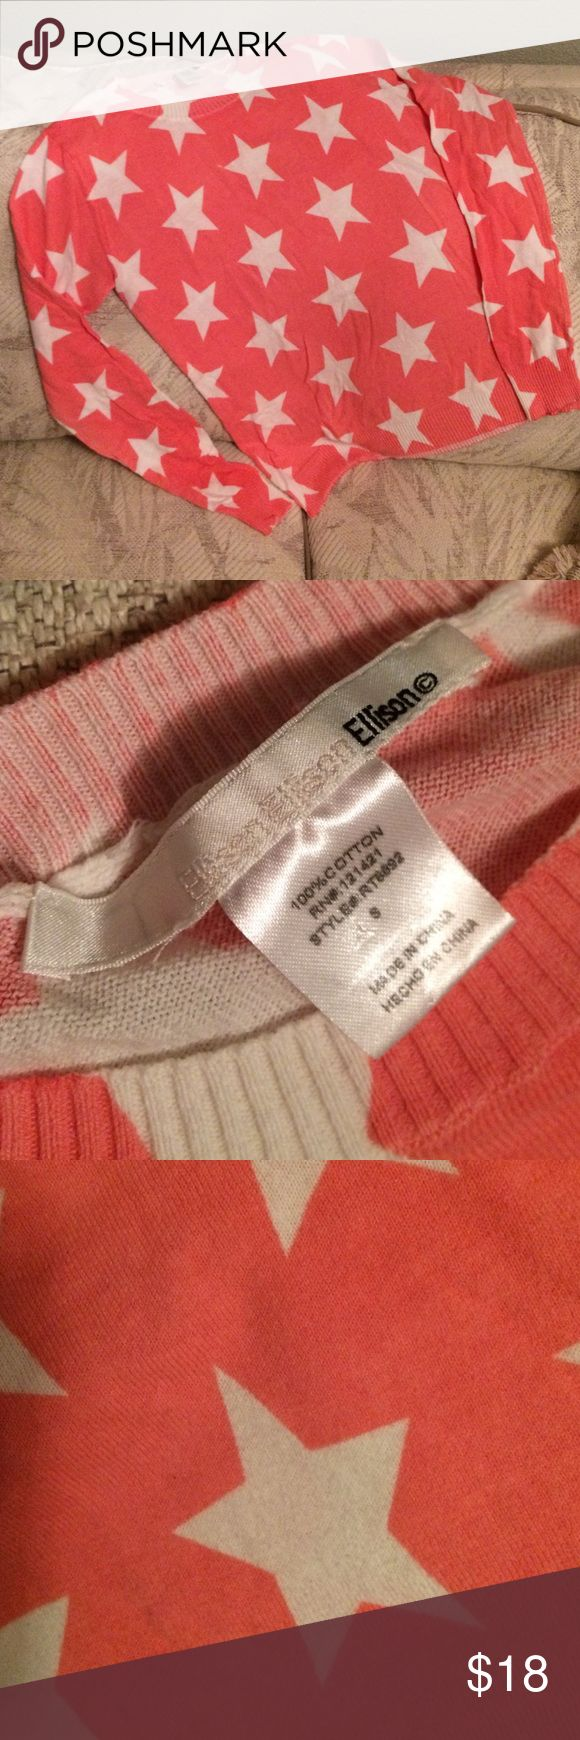 Lightweight 💯cotton sweater. Coral and white Star pattern light sweater that was gently loved, no flaws. Looks brand new. Ellison Sweaters Crew & Scoop Necks